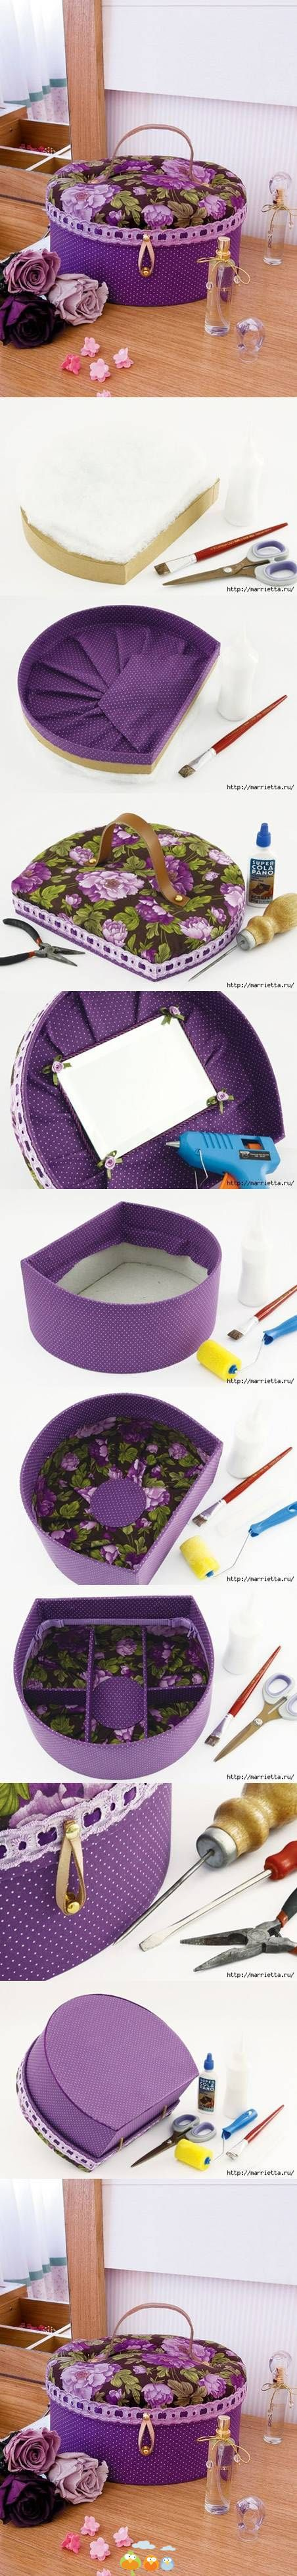 How to make this box: